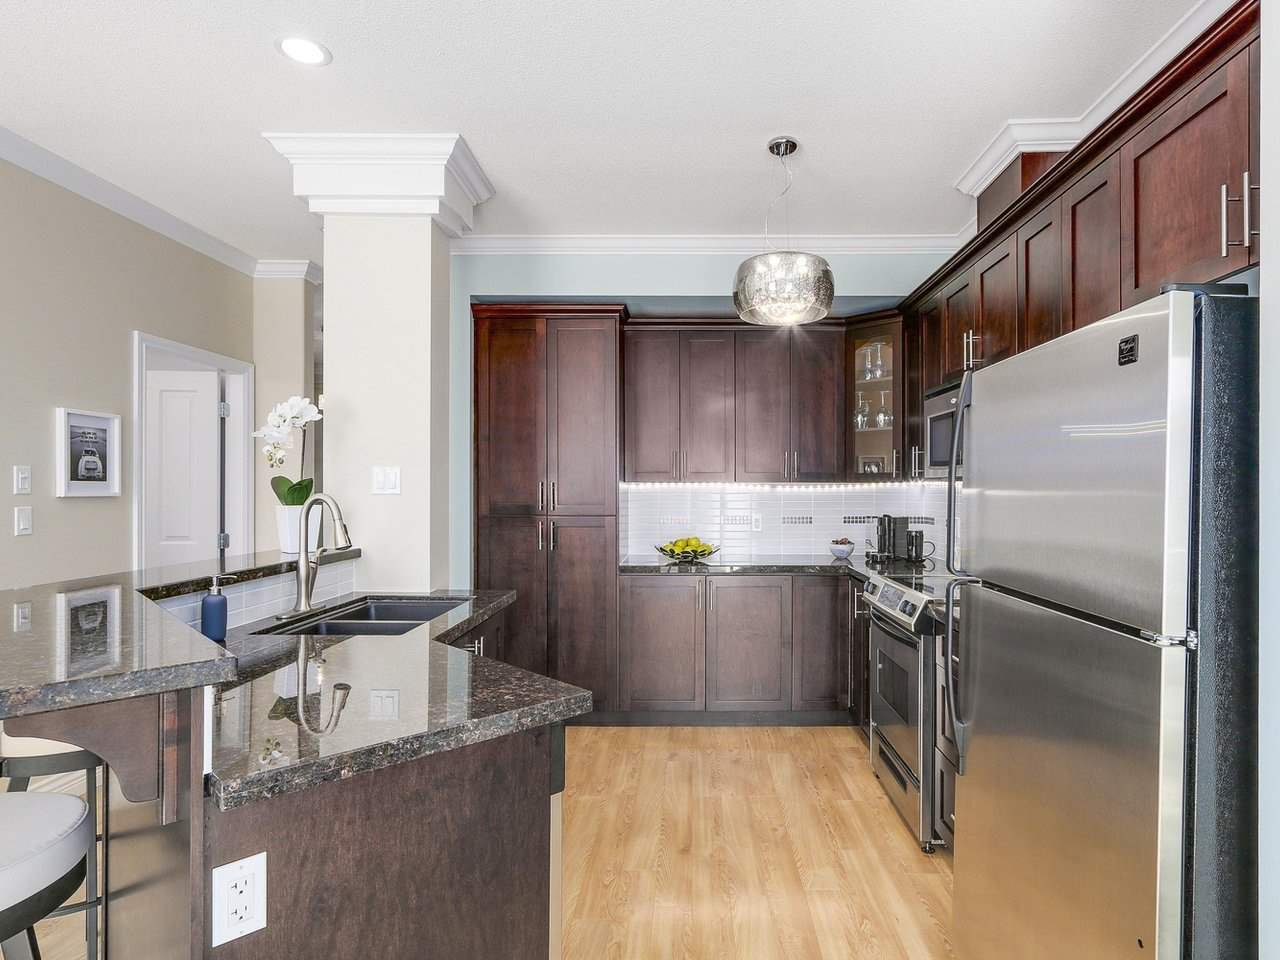 Photo 8: Photos: 43 19330 69 AVENUE in Surrey: Clayton Townhouse for sale (Cloverdale)  : MLS®# R2185704